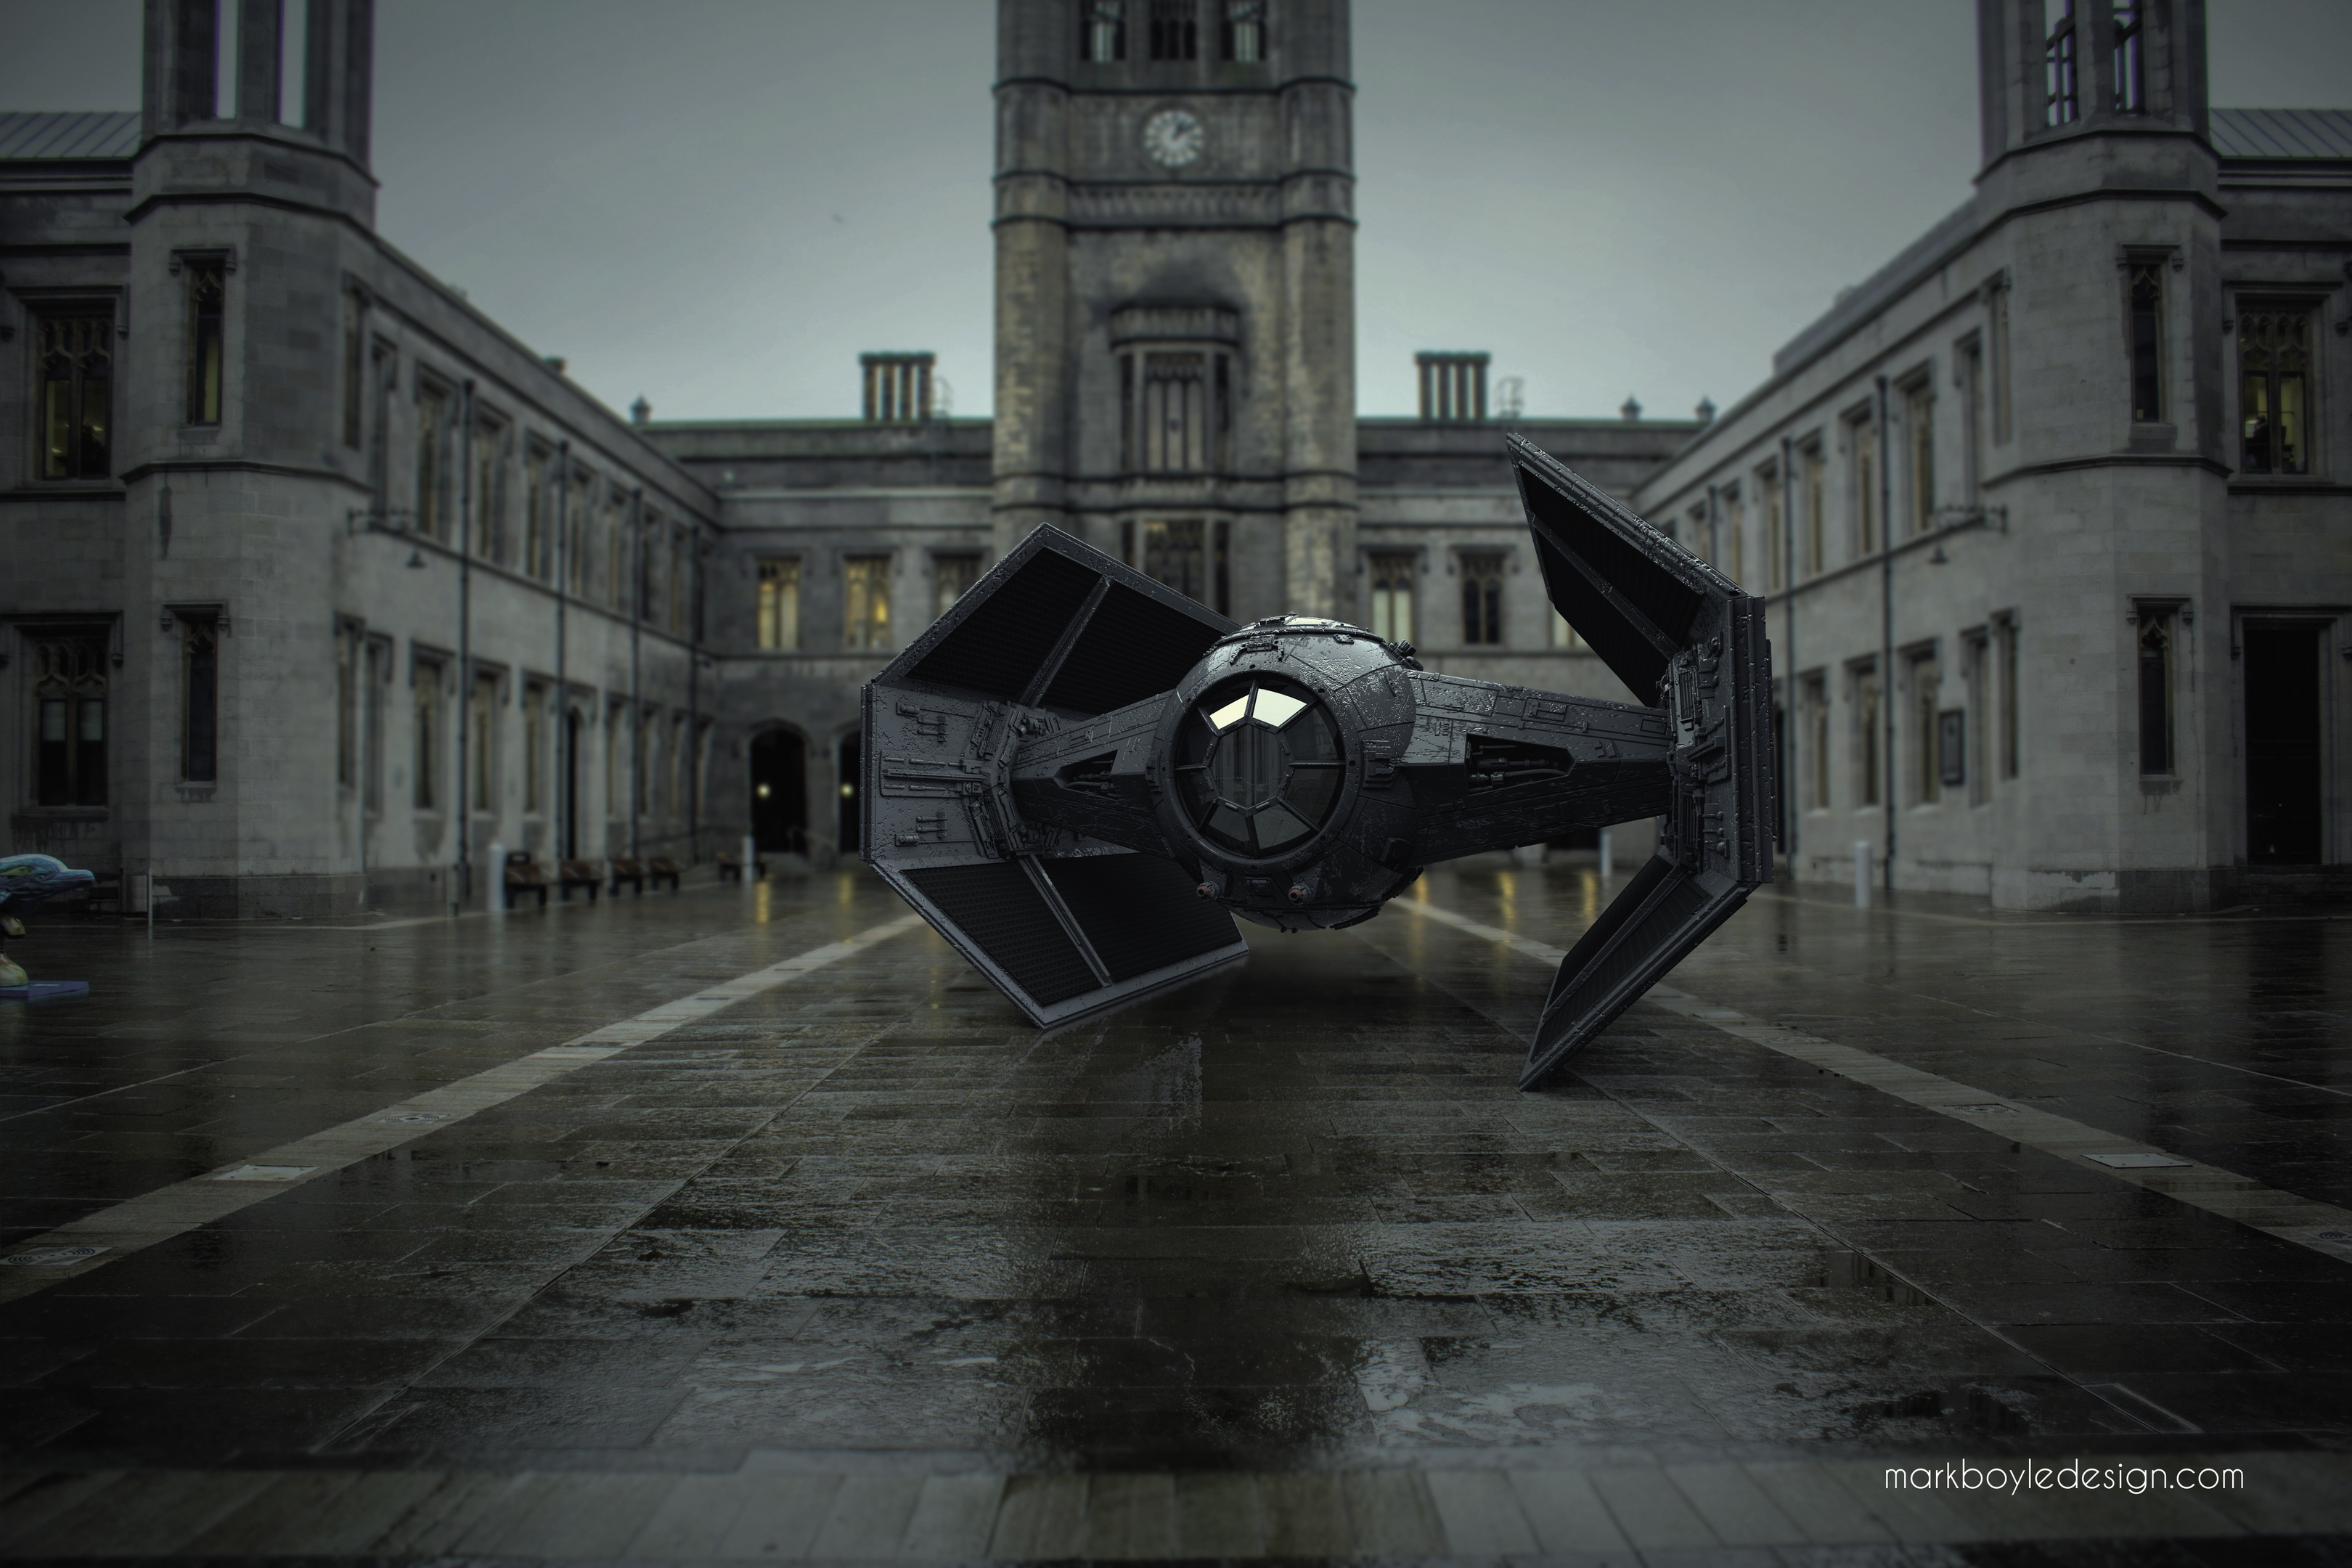 FILM ICON: A TIE fighter in the Marischal College quad.